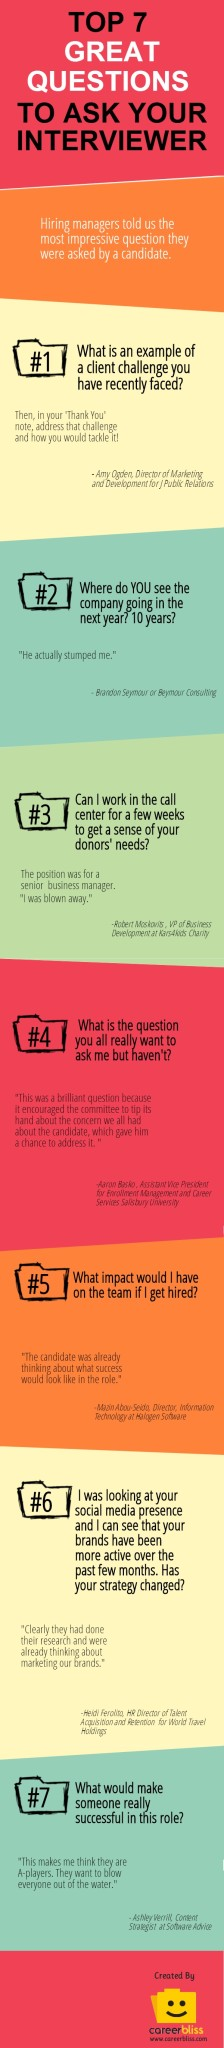 7-great-questions-to-ask